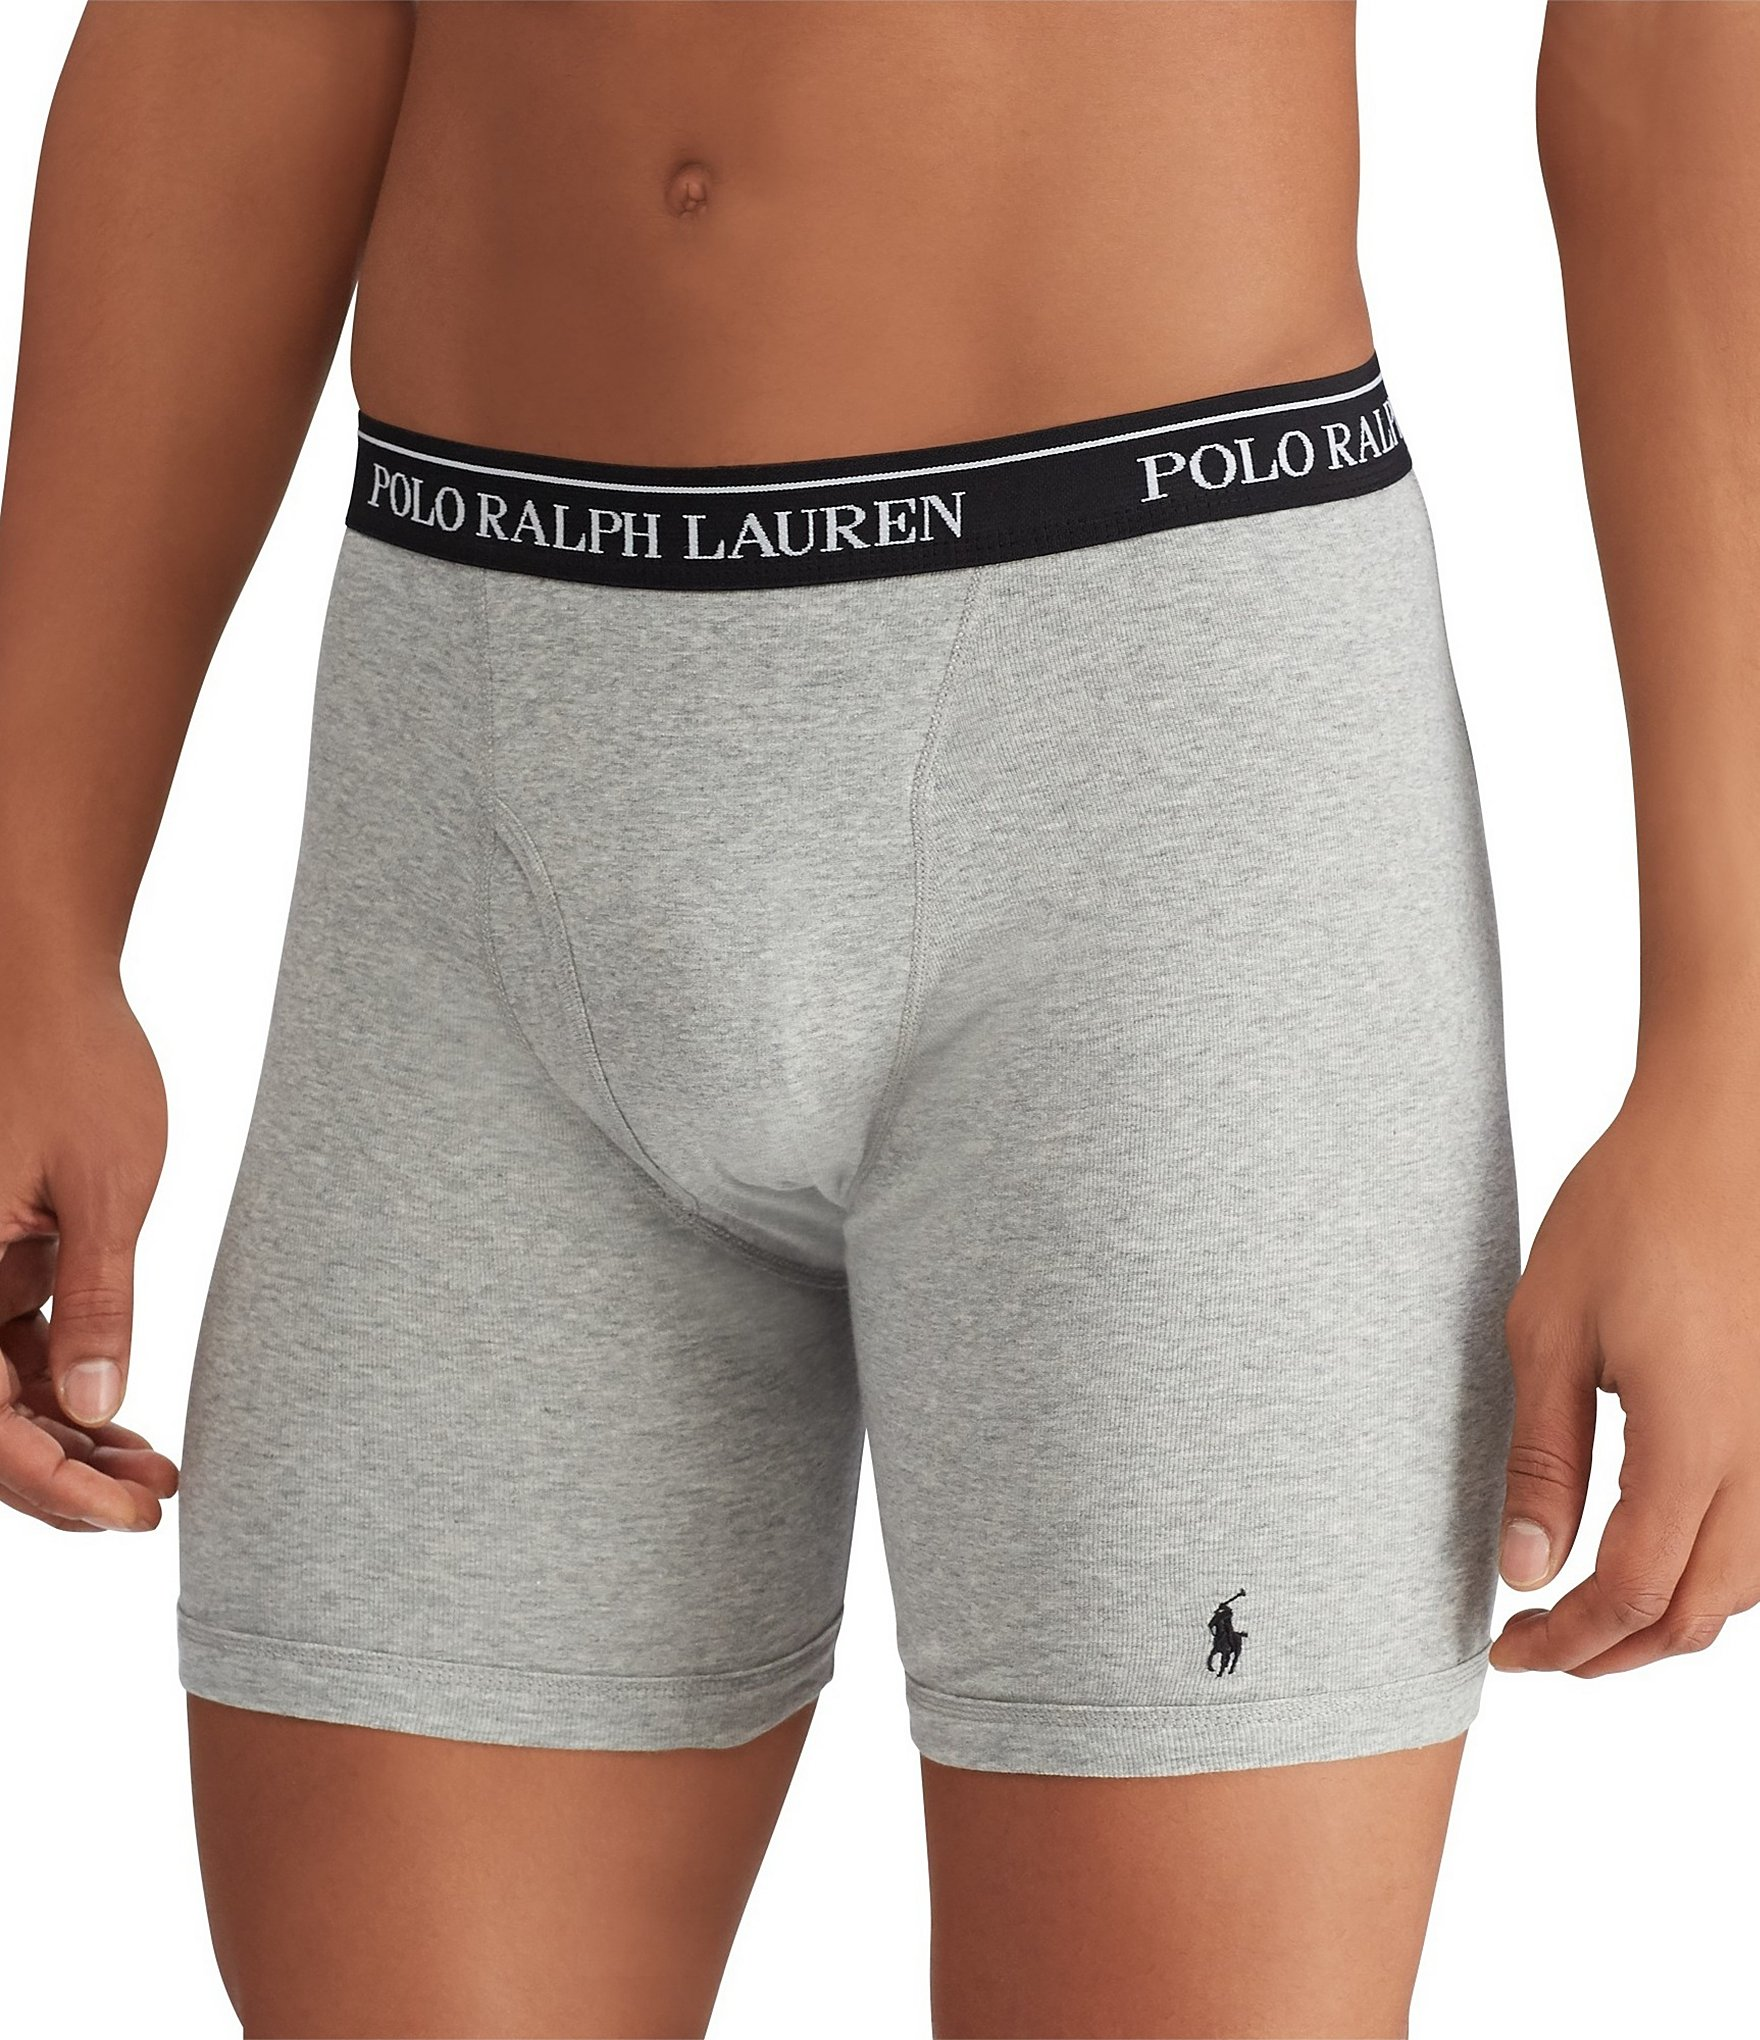 d425294c59 Polo Ralph Lauren Men's Boxer Briefs & Trunks | Dillard's